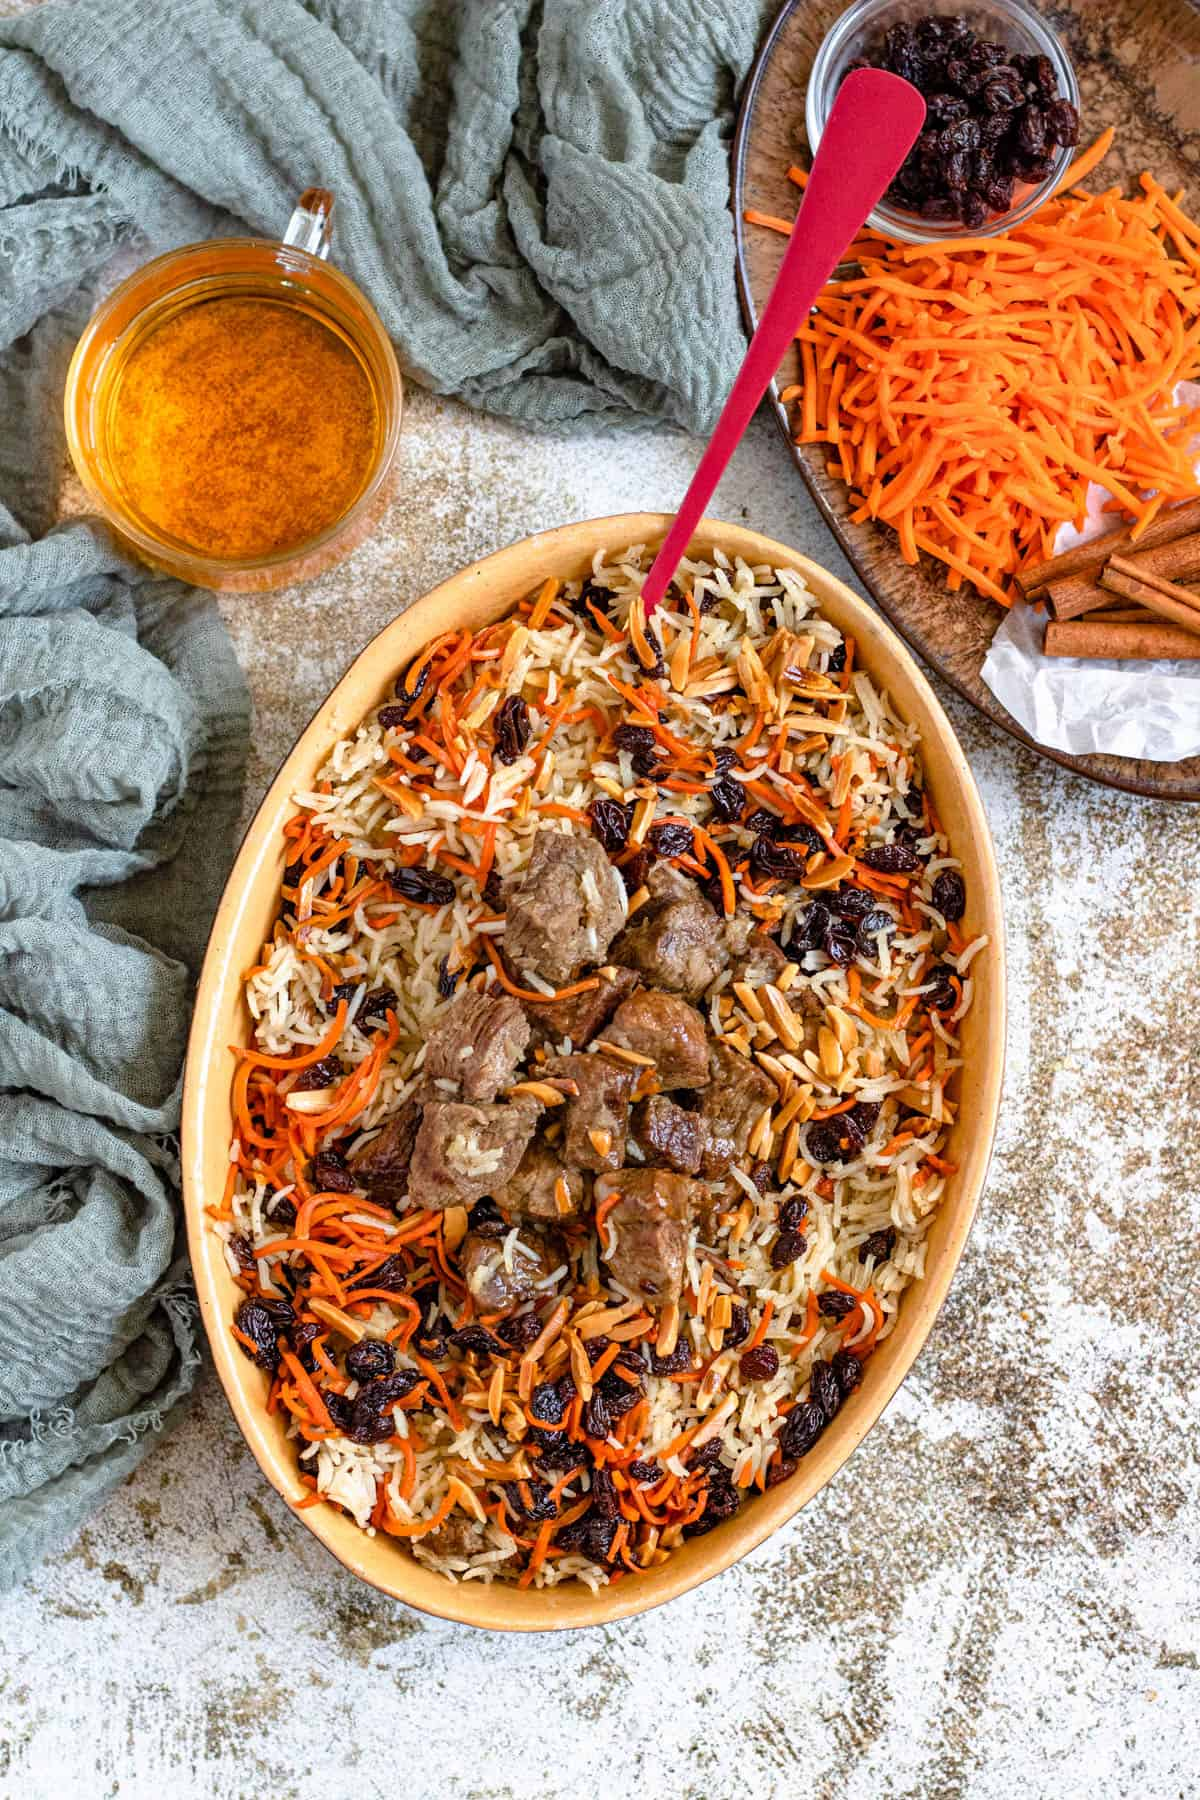 Platter of Kabuli Pulao with carrots and almonds and raisins